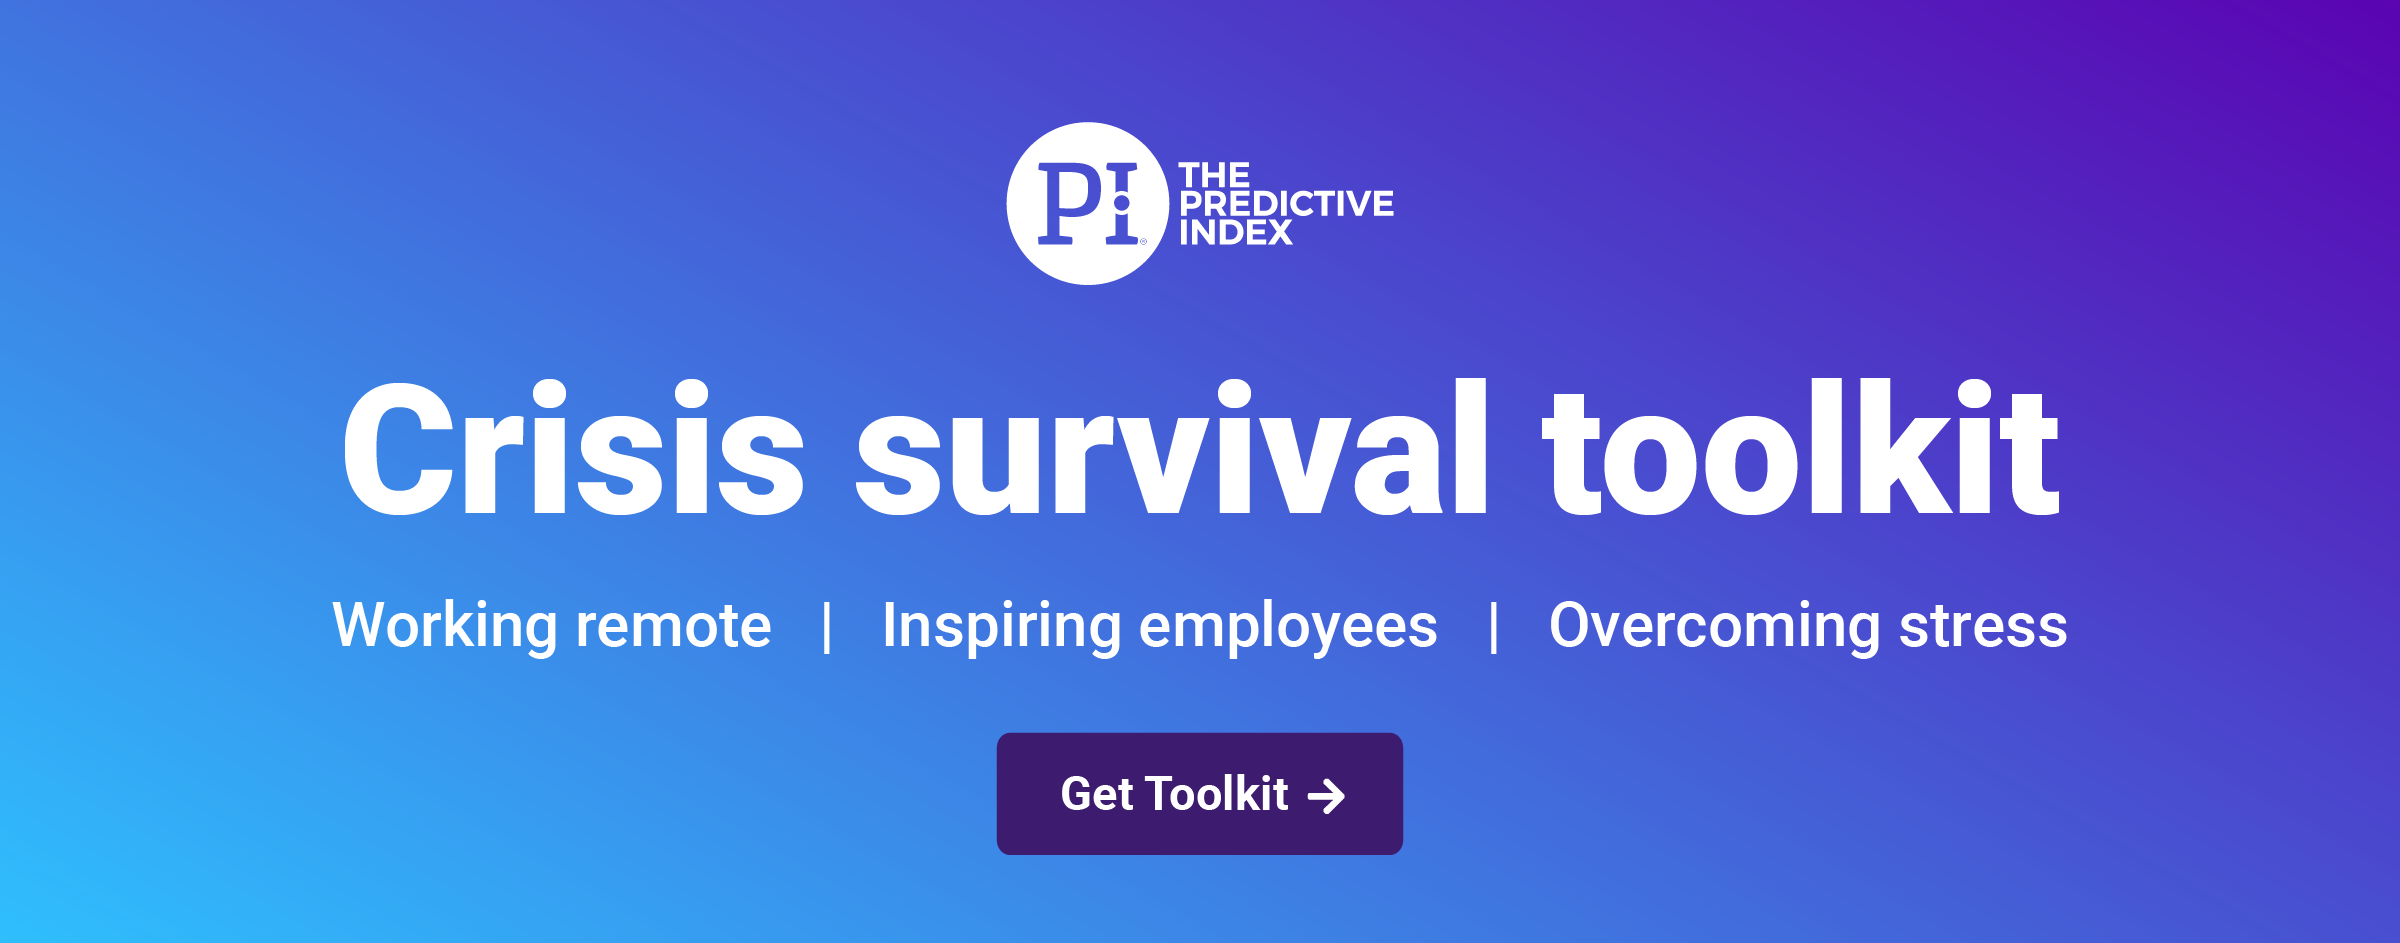 click to see the crisis survival toolkit